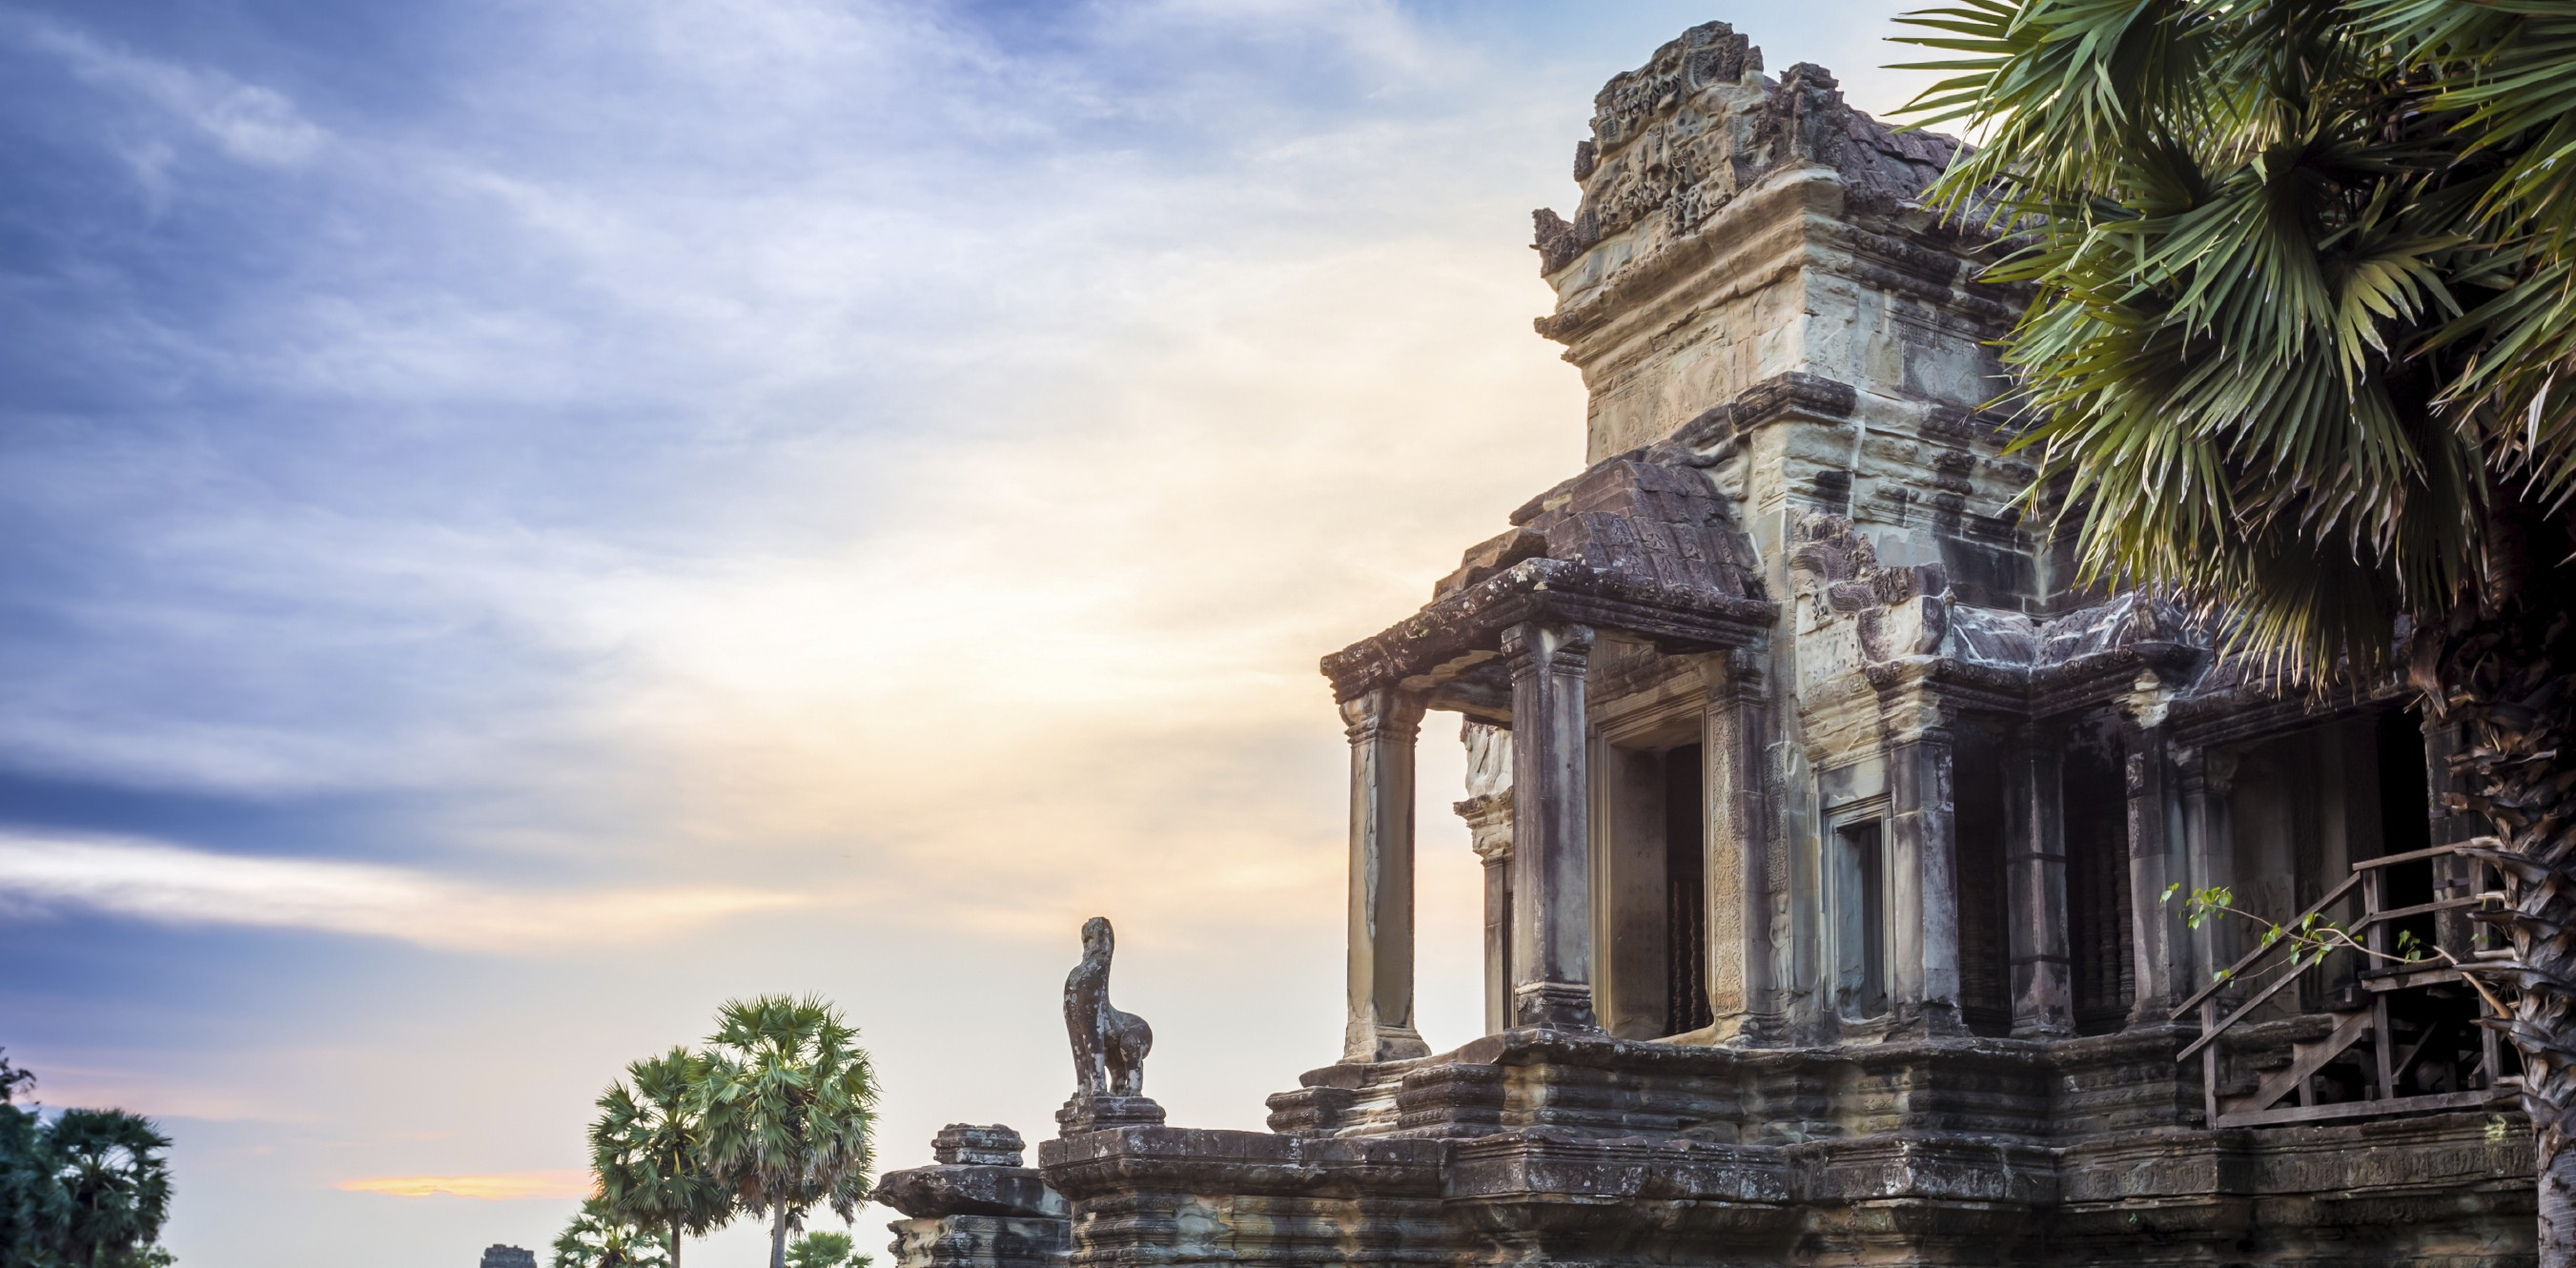 Siem Reap, the gateway to UNESCO World Heritage site Angkor Wat, is another booming property hotspot.